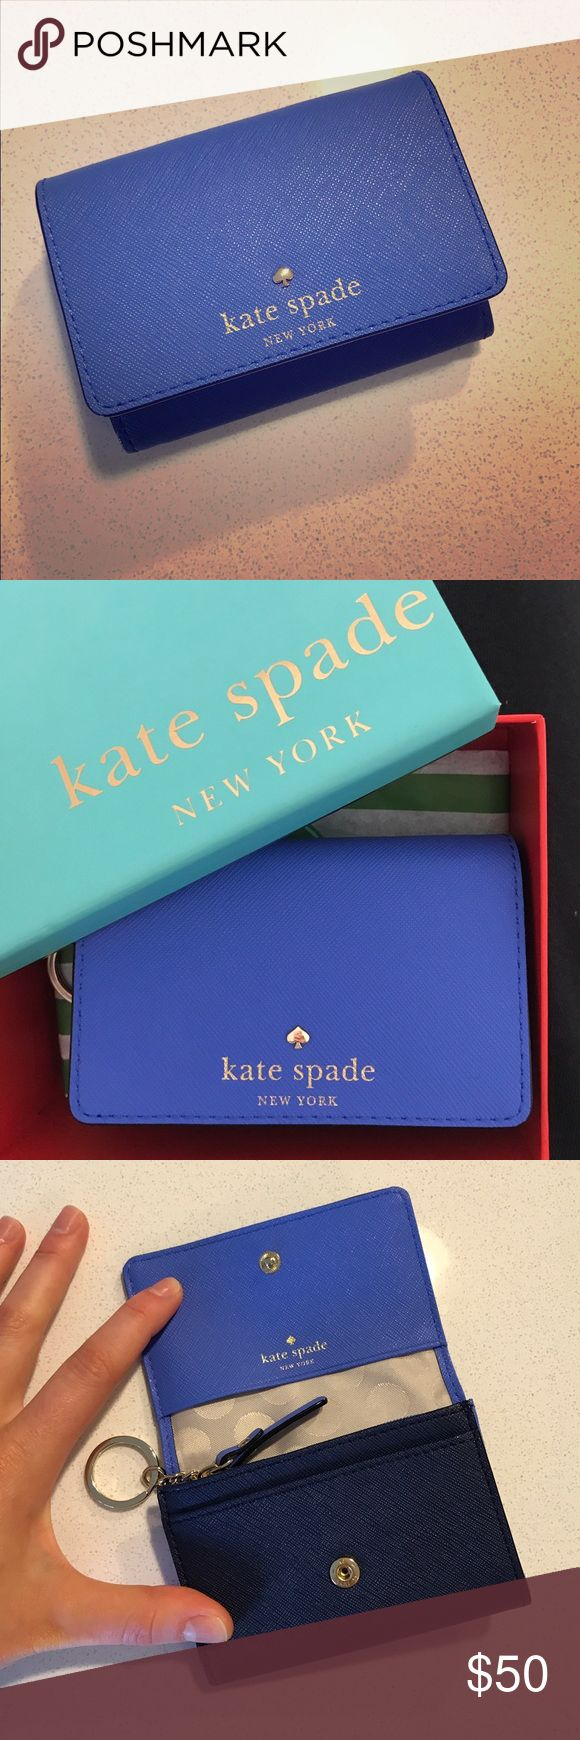 """NWT Kate Spade """"Darla"""" wallet NWT Kate Spade """"Darla"""" wallet from Cedar Street collection. Beautiful periwinkle blue and navy blue color. Features ID holder, coin purse, keychain, and multiple pockets. Comes in original Kate Spade box and care card. Make an offer! kate spade Bags Wallets"""